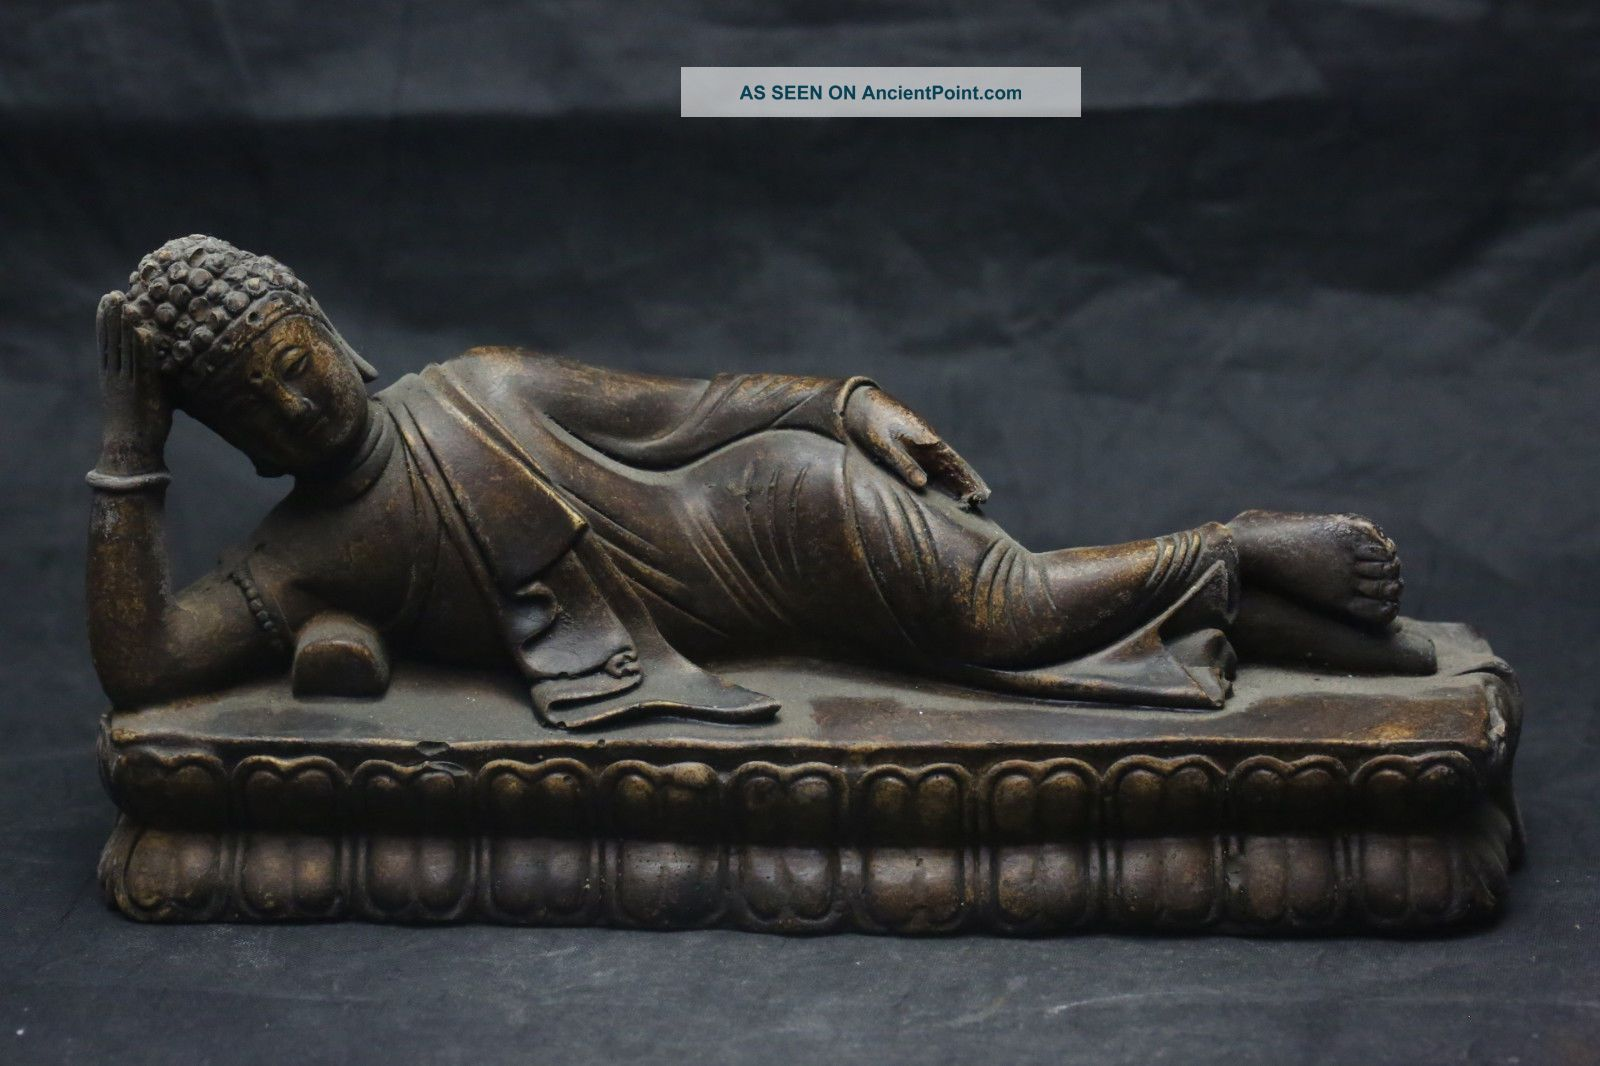 Old Chinese Exquisite Child Old Stone Statue A Figurines & Statues photo